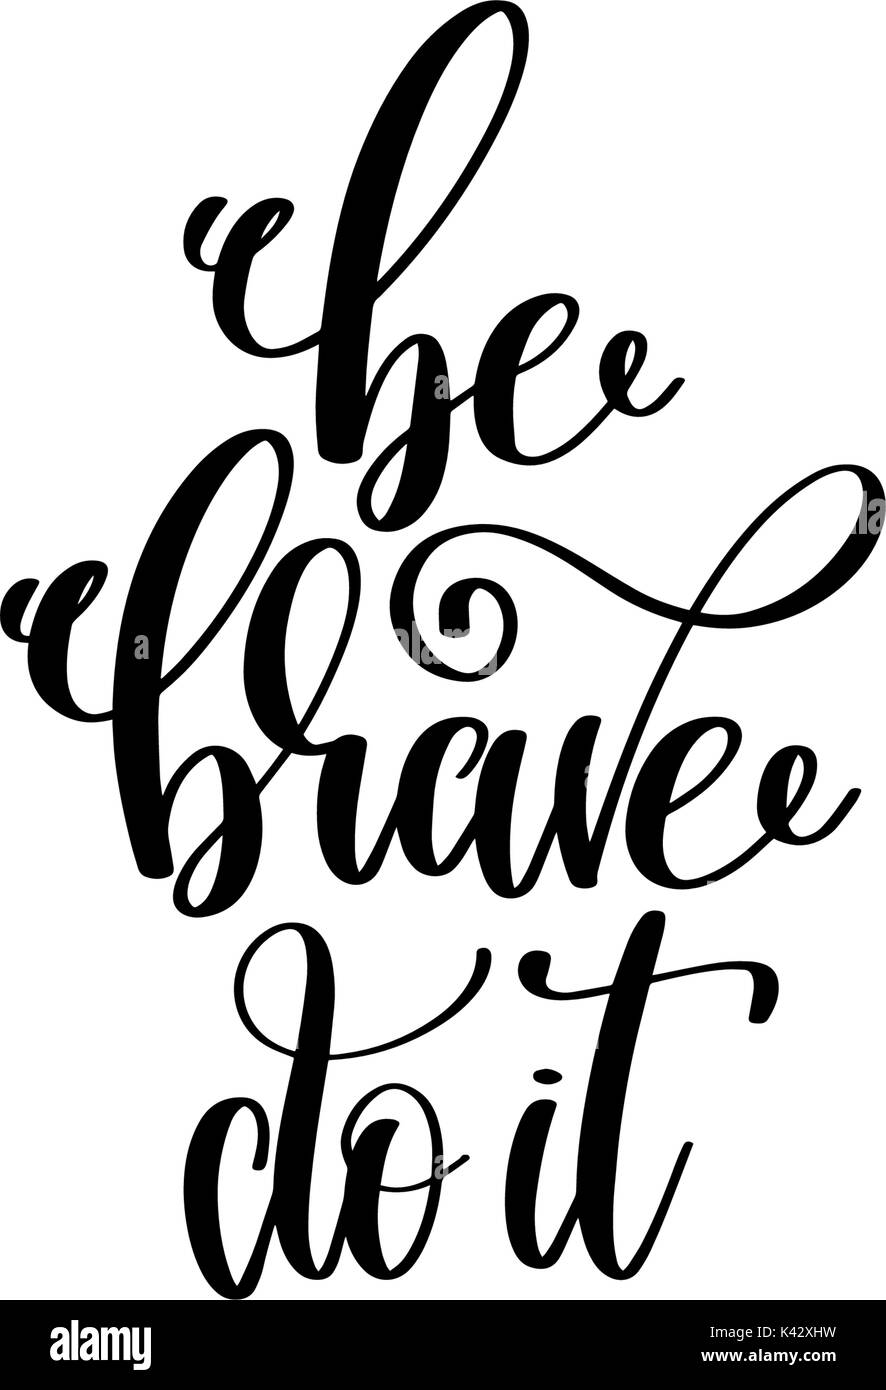 be brave do it hand lettering inscription stock vector art Just Do It Meme be brave do it hand lettering inscription